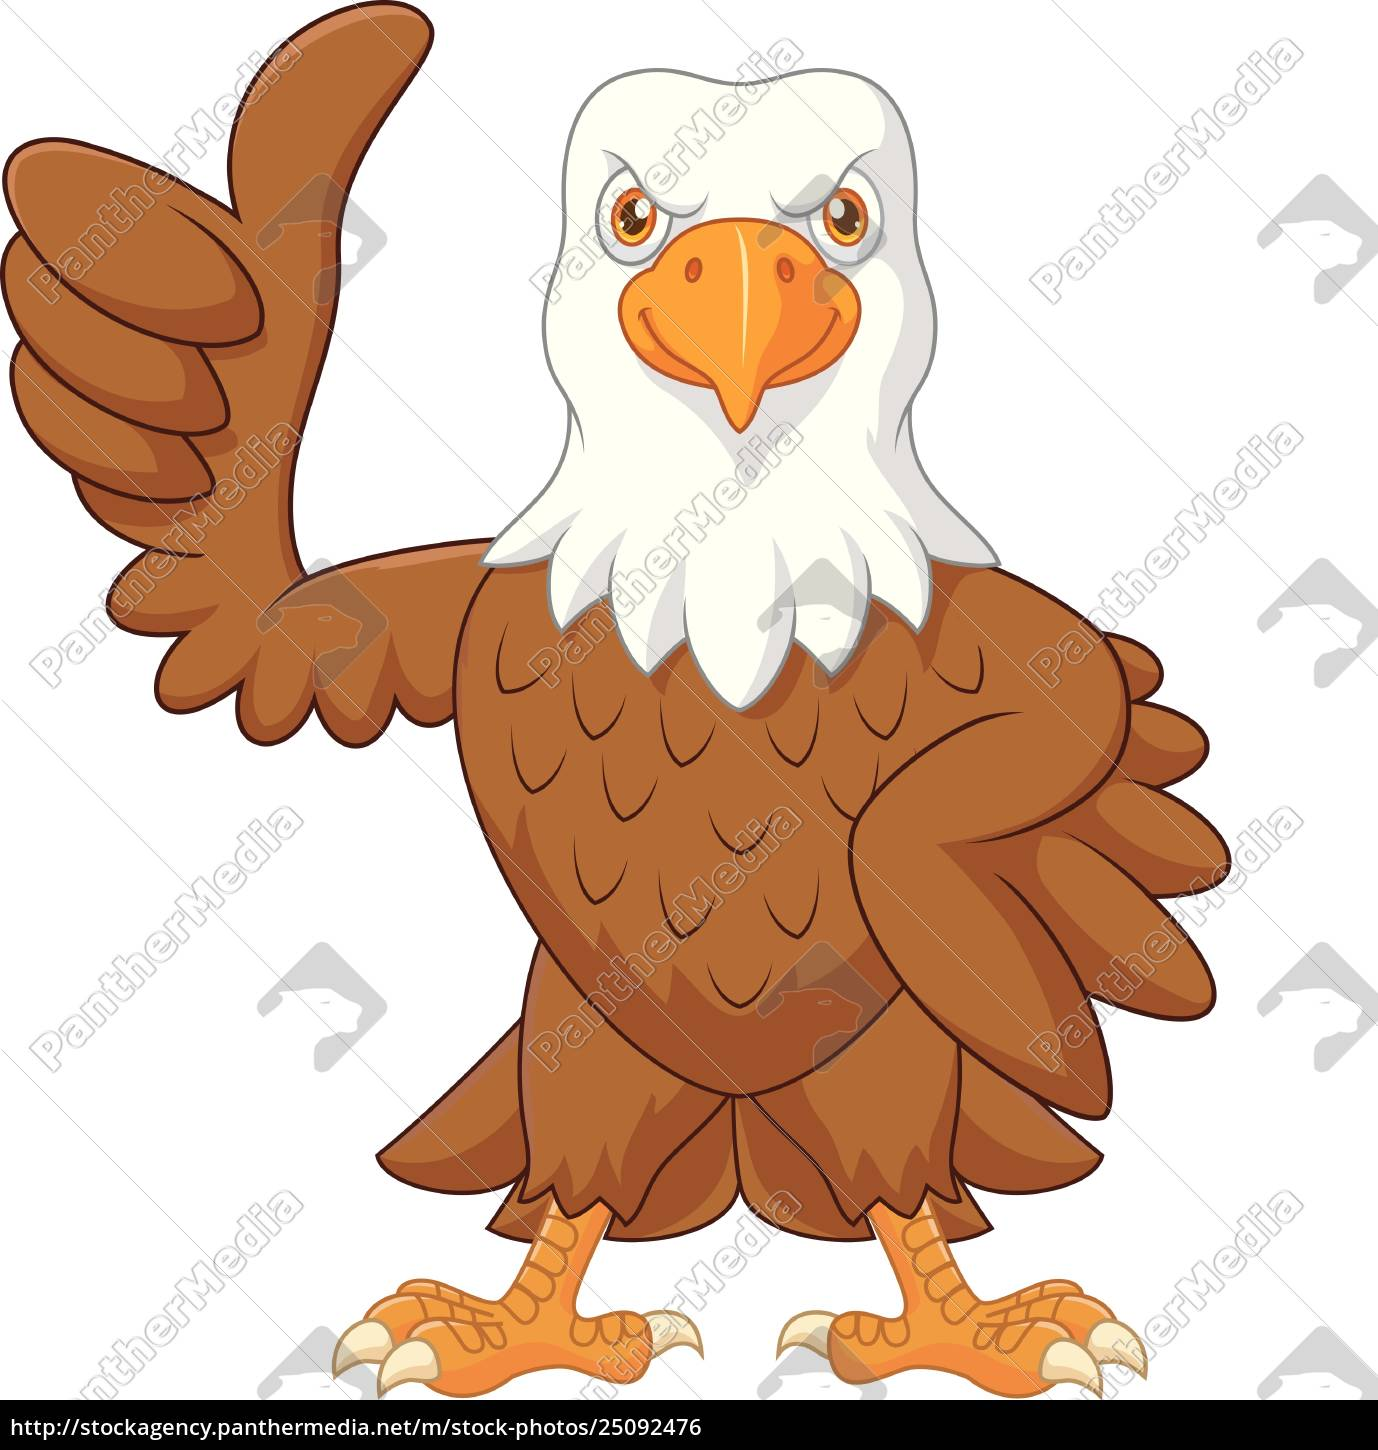 American Eagle Credit Card Login >> Cartoon funny eagle giving thumb up isolated on white - Royalty free photo - #25092476 ...